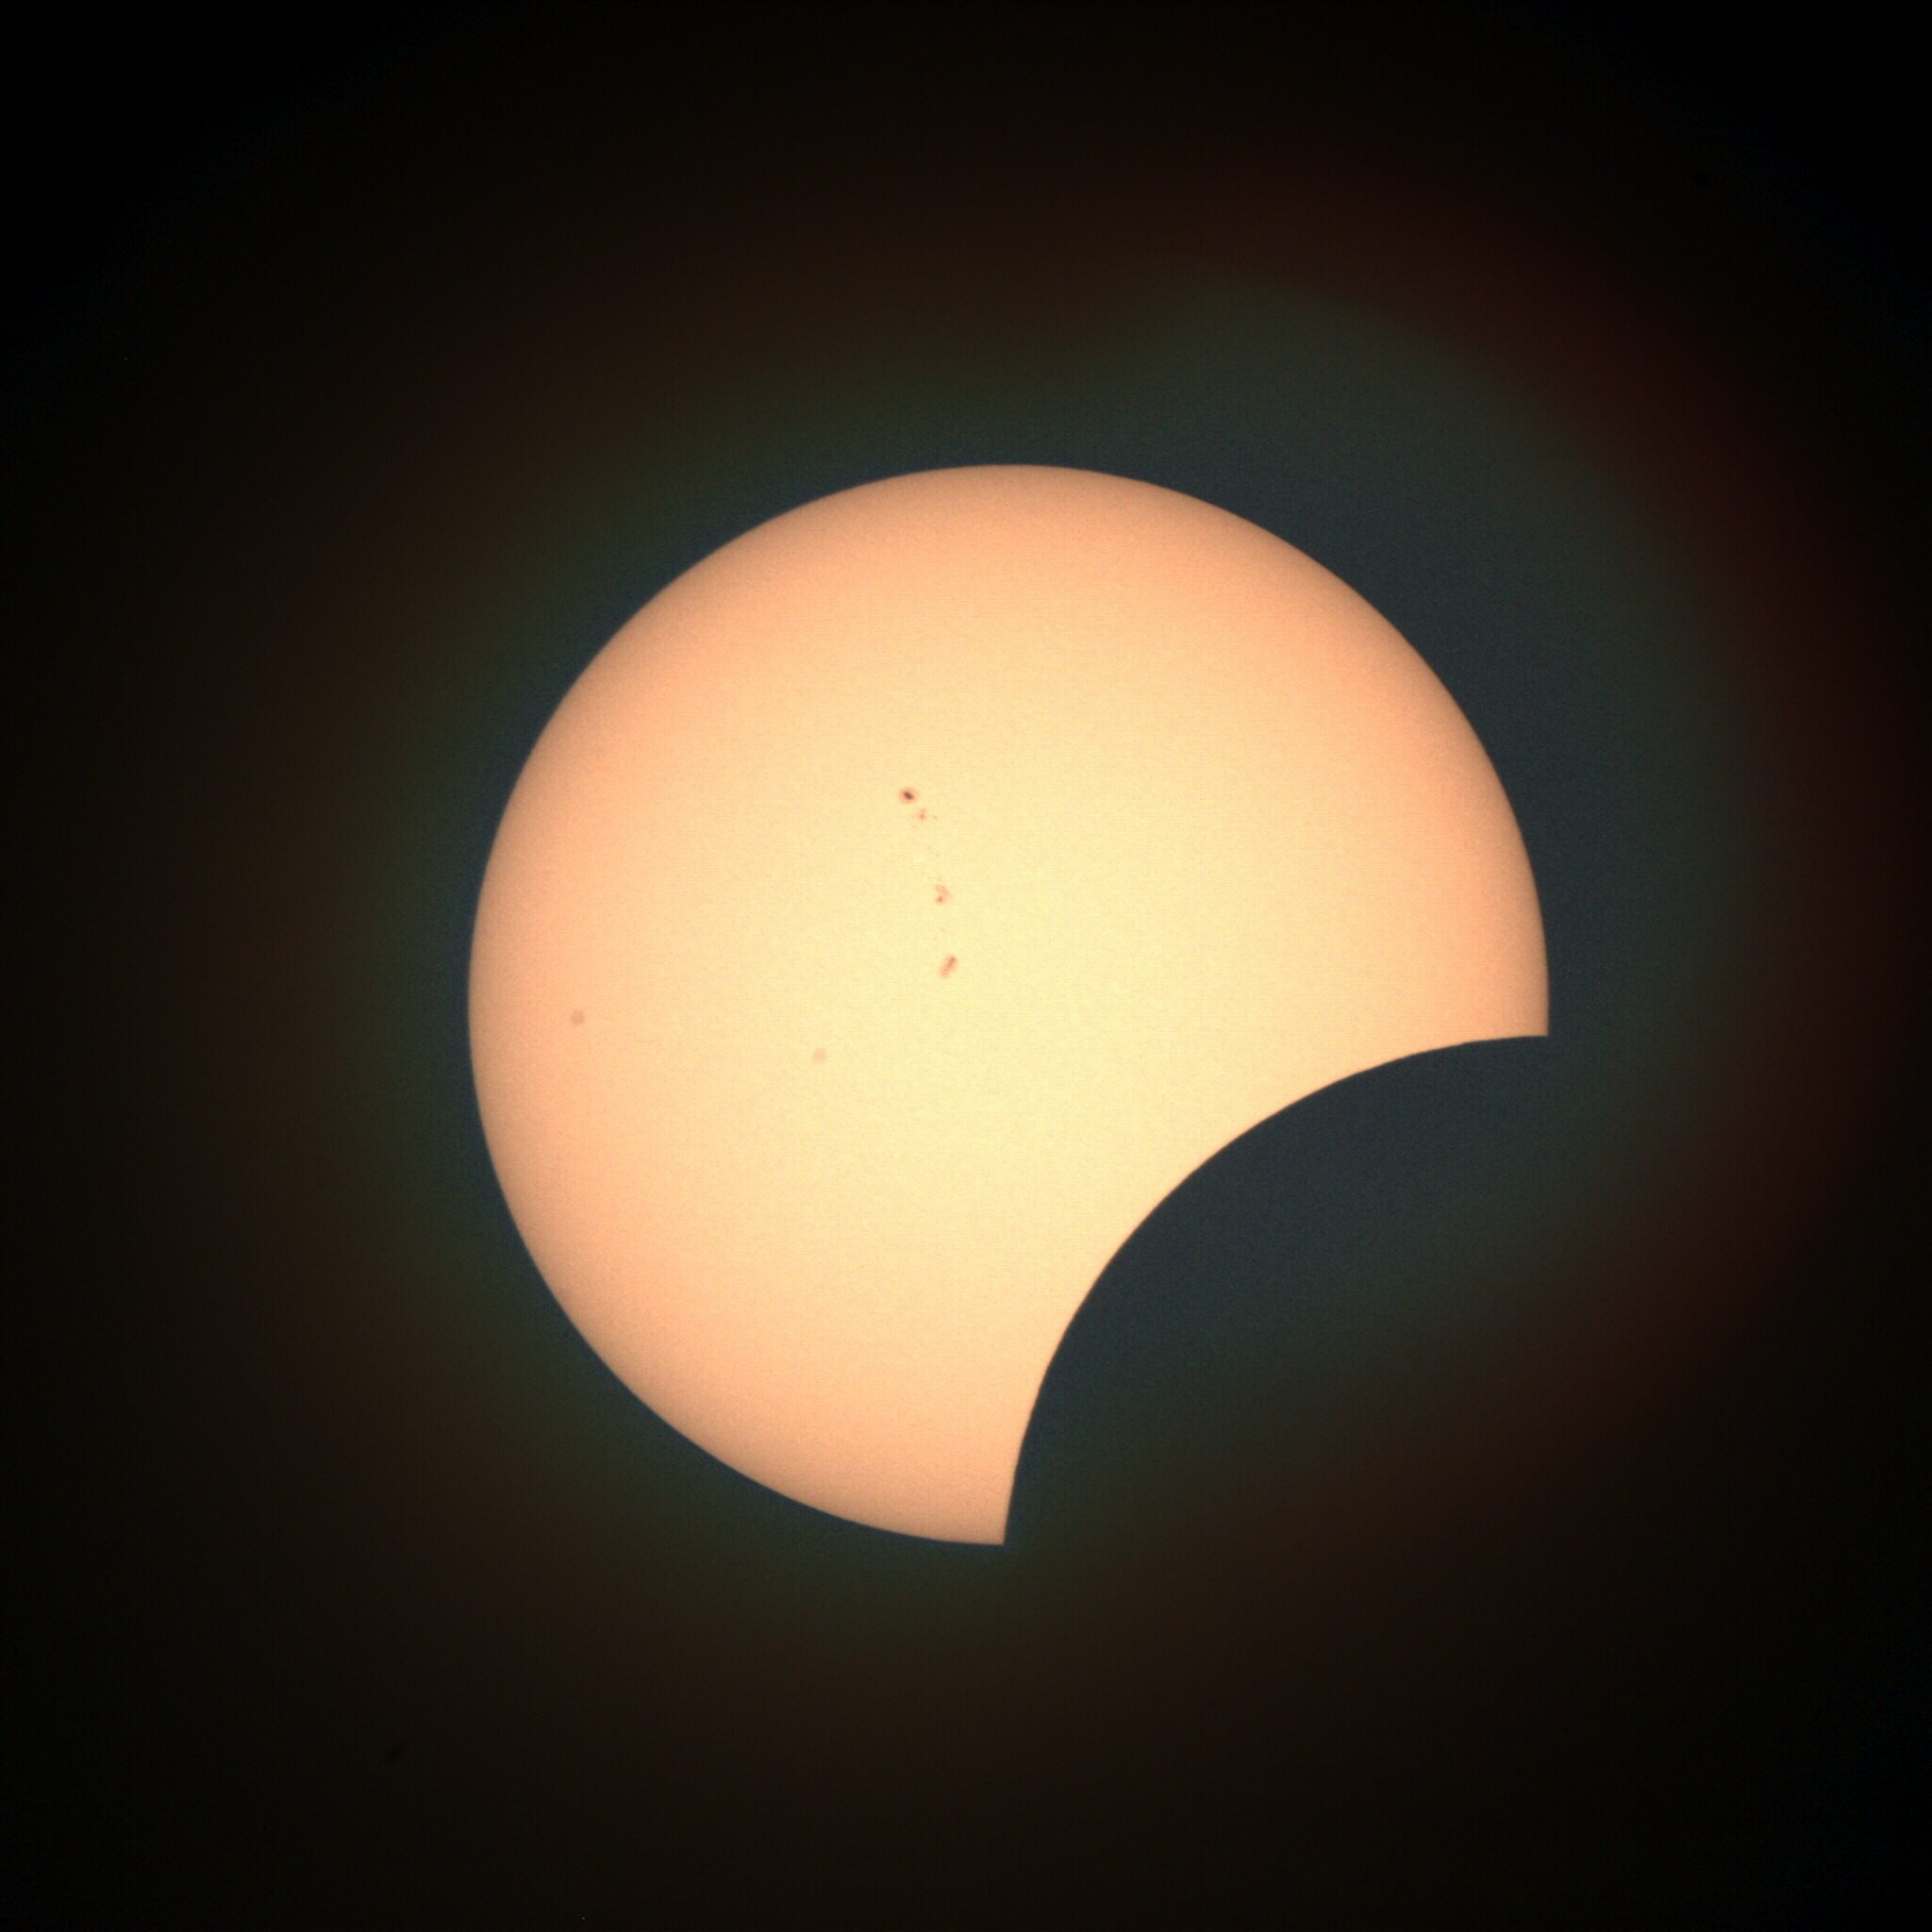 We'll continue udating current images of the Sun for the remainder of the #eclipse  (ends at 4:01pm in #Providence) https://t.co/qDVkYXs8d5 https://t.co/1oSRjYmW10